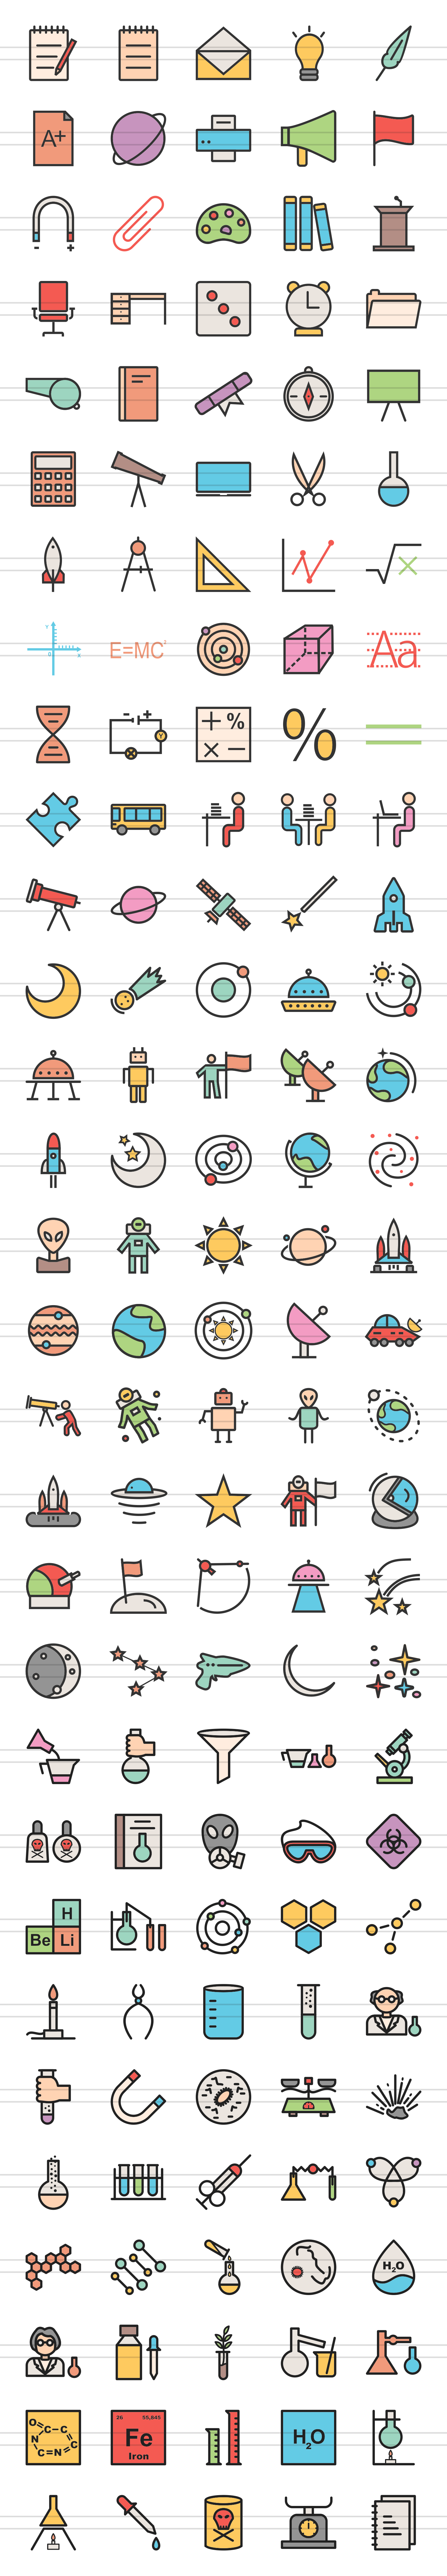 150 Science Filled Line Icons example image 2